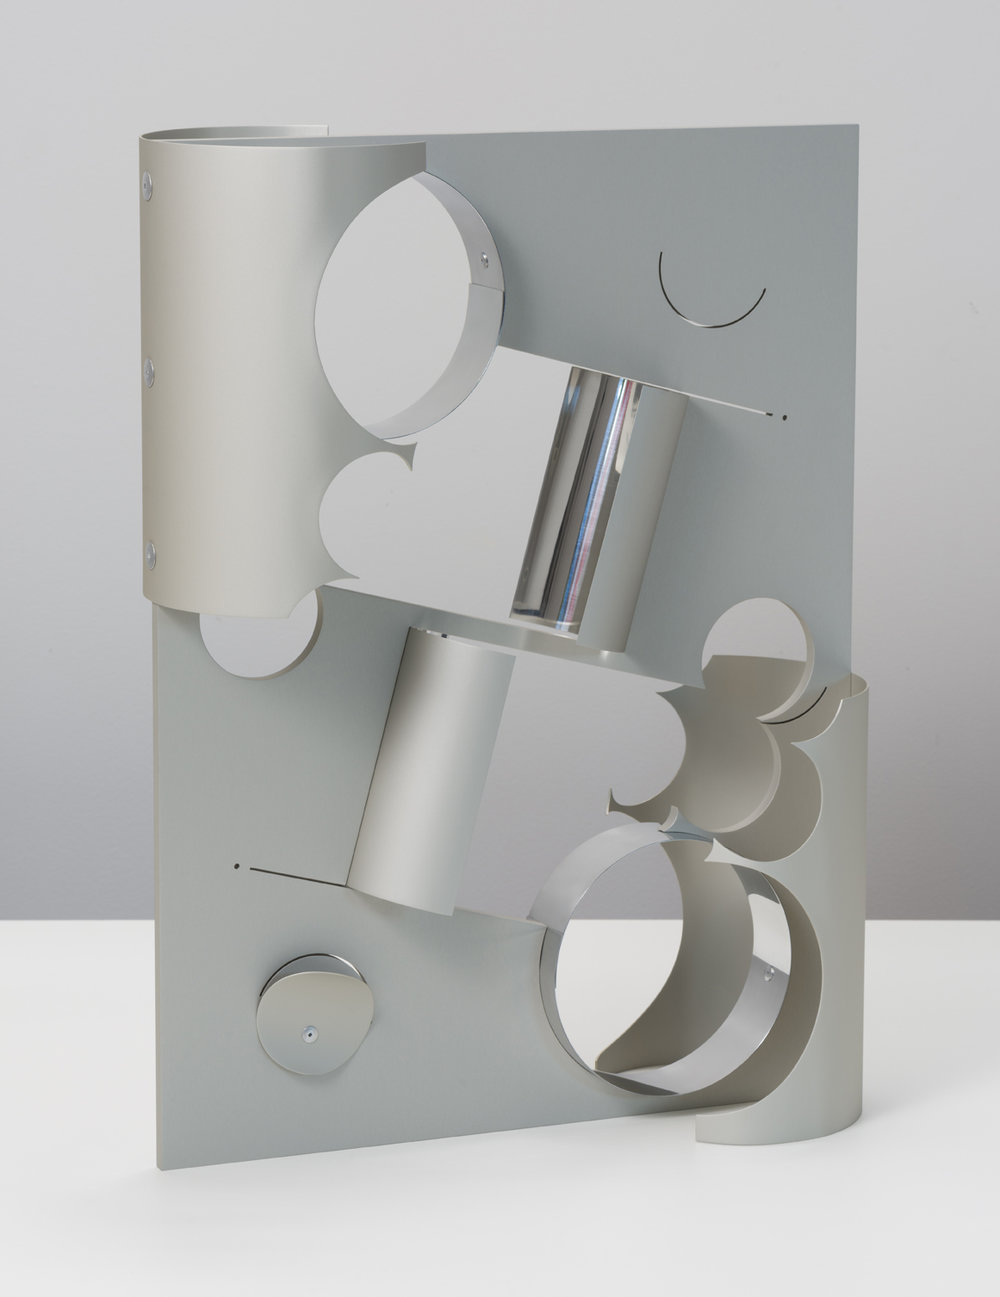 Matt Paweski, Tina, 2018. Anodized and polished aluminium, aluminium rivets, 57.7 x 43.1 x 17.7 cm; 22.75 x 17 x 7 inches.